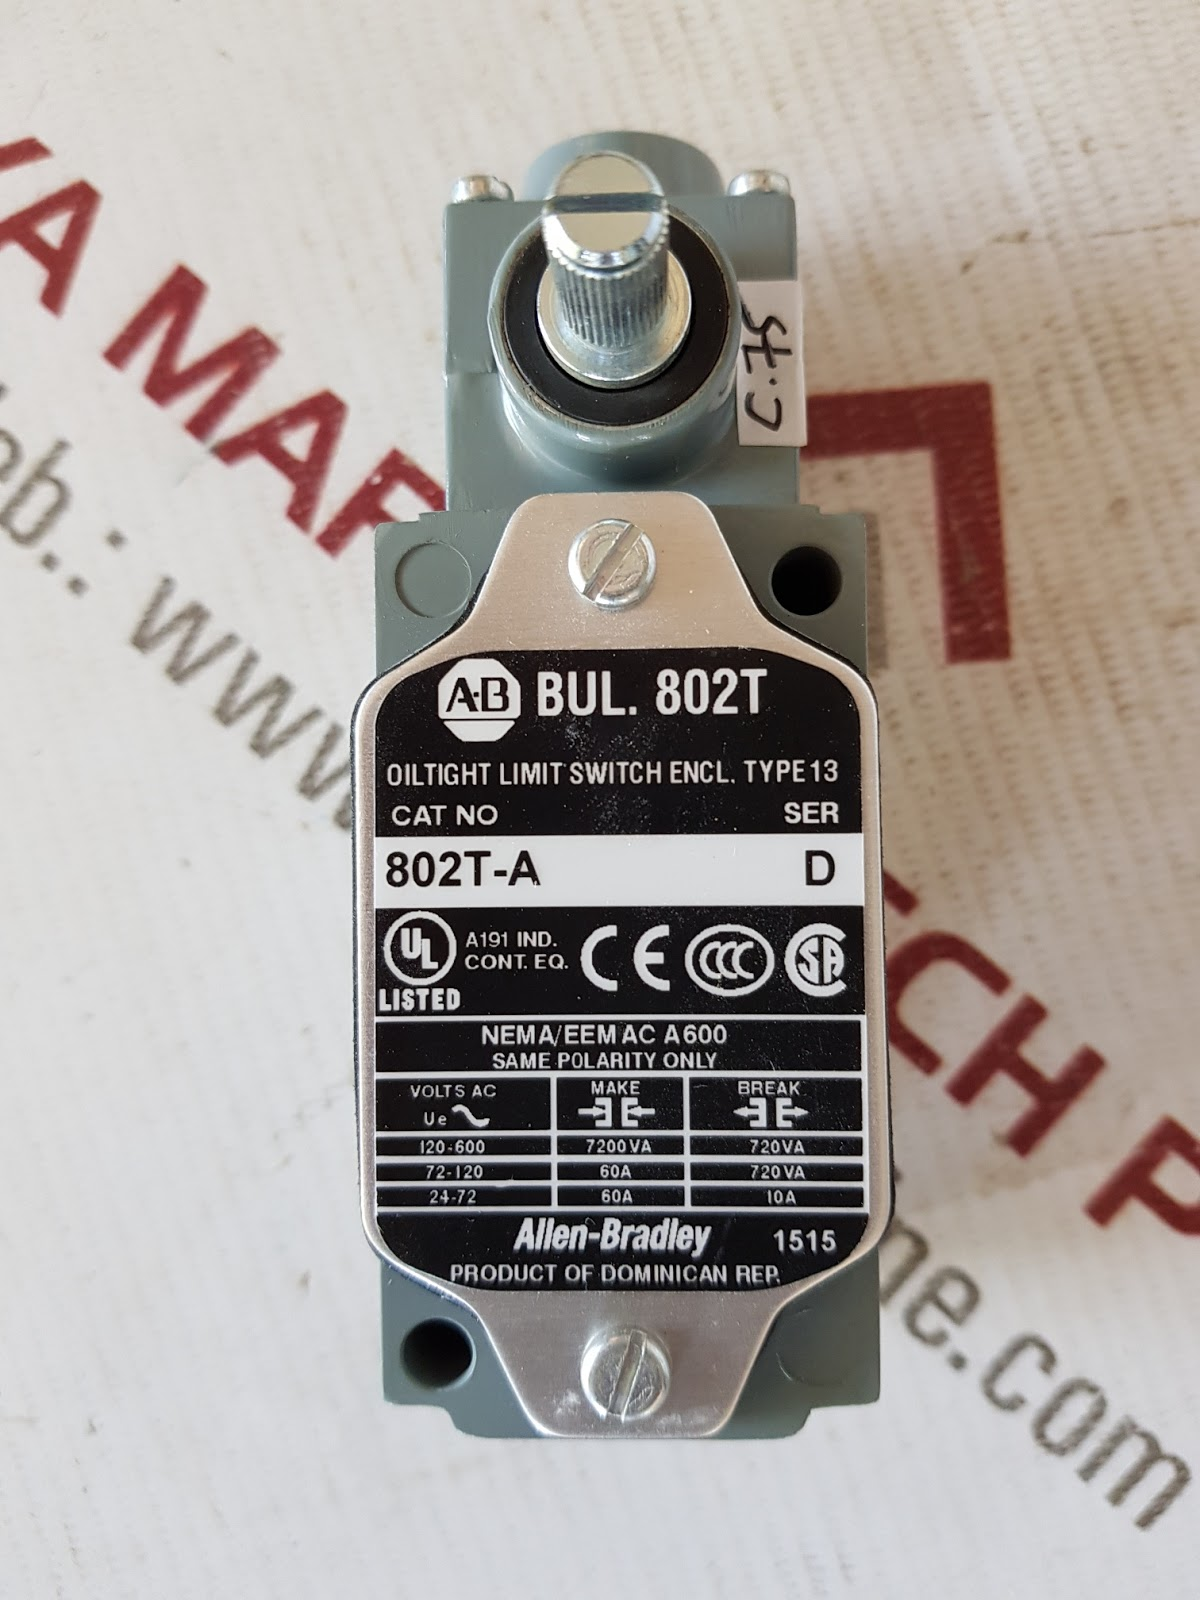 hight resolution of a b bul 802t limit switch with operator and roller arm type 13 802t a nema eem ac a 600 a191 a173a 1515 acct 7254000 condition new 1 pcs